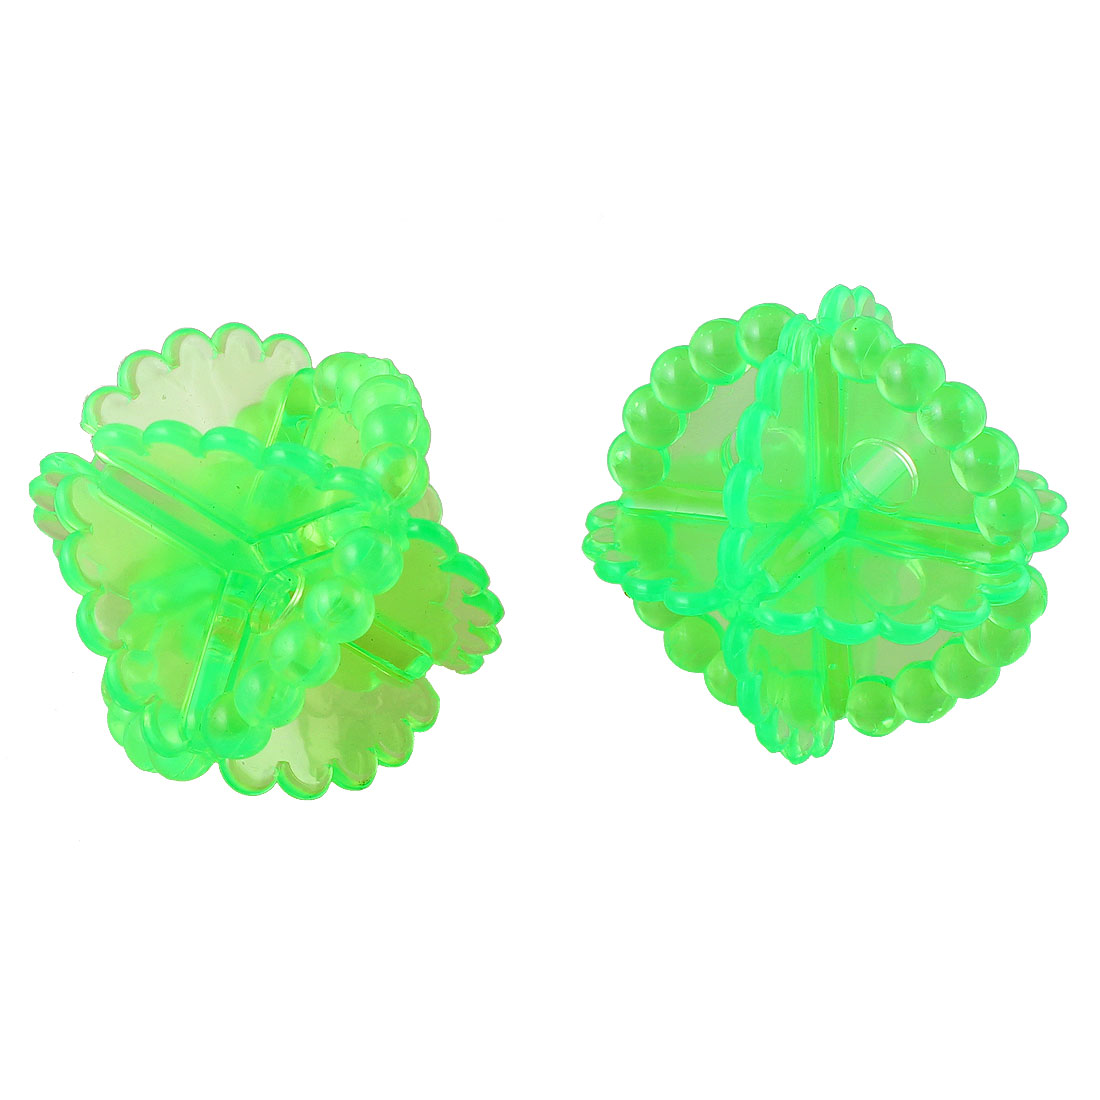 "2"" Diameter Clear Green Soft Plastic Octahedral Laundry Washing Ball 2 Pcs"